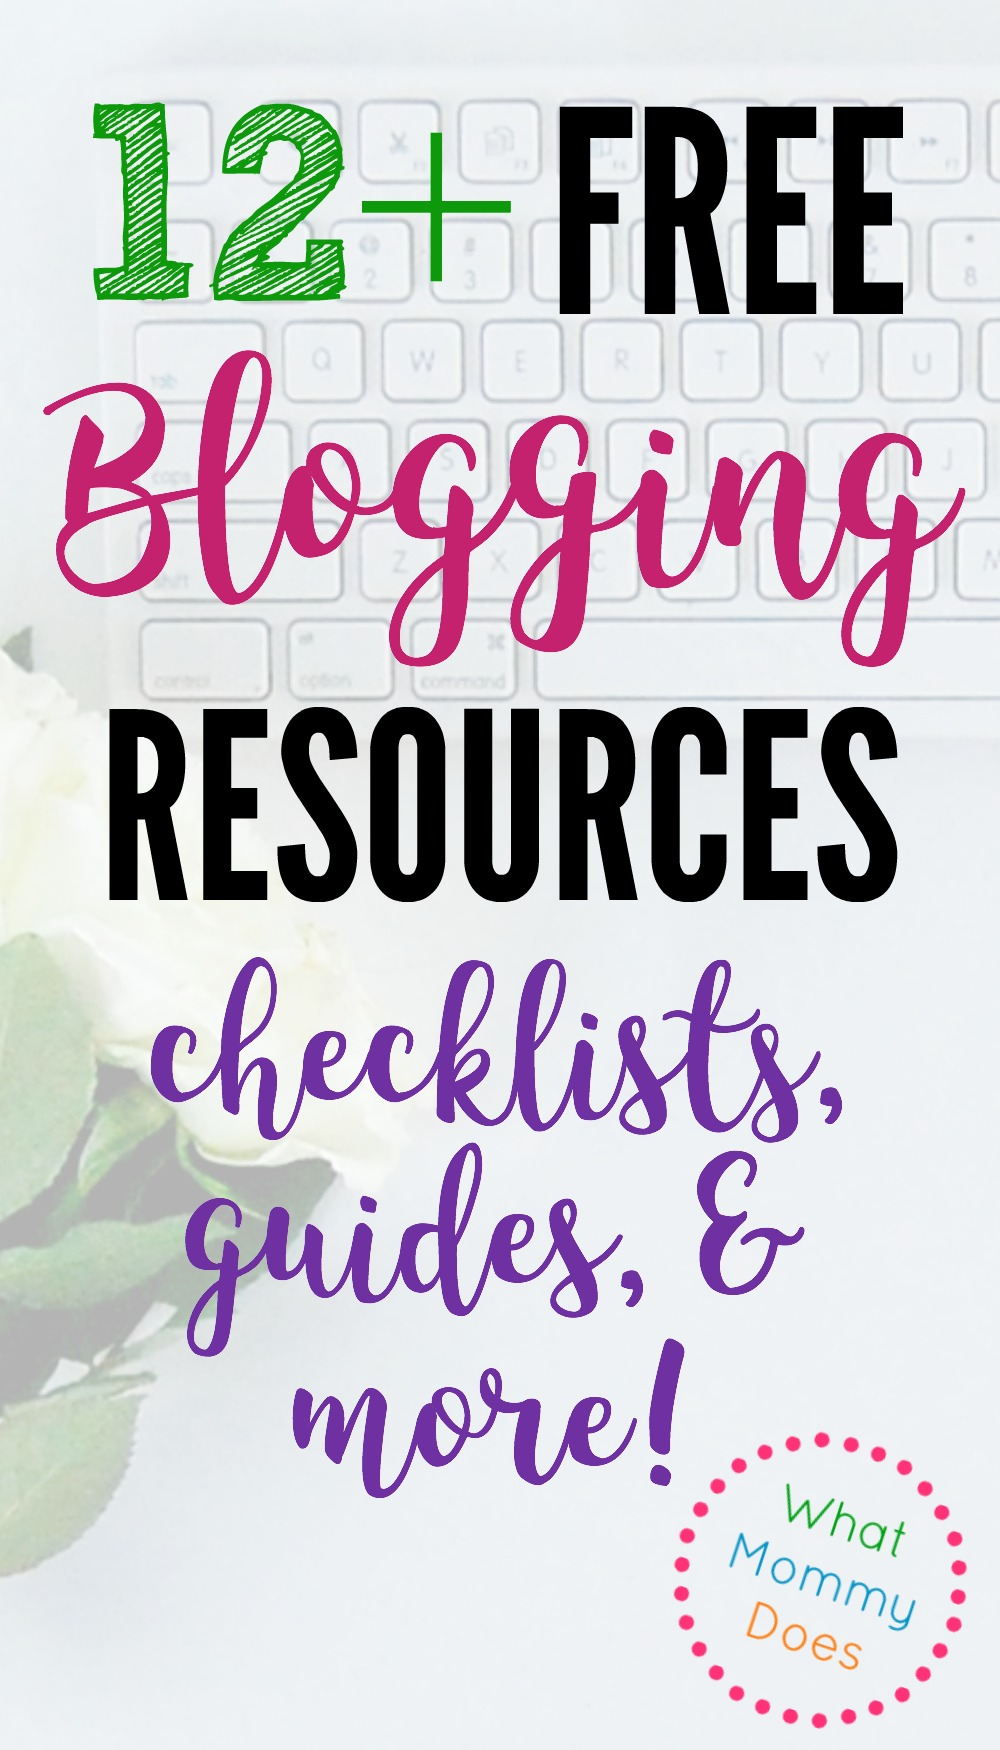 These are the blogging guides you MUST download right now! If you need tips on growing your blog traffic, ideas to increase blogging income, this is a great resource list for you! You can get lots of ideas for free. Just follow each link to redeeem. | 12+ Free Blogging Resouces